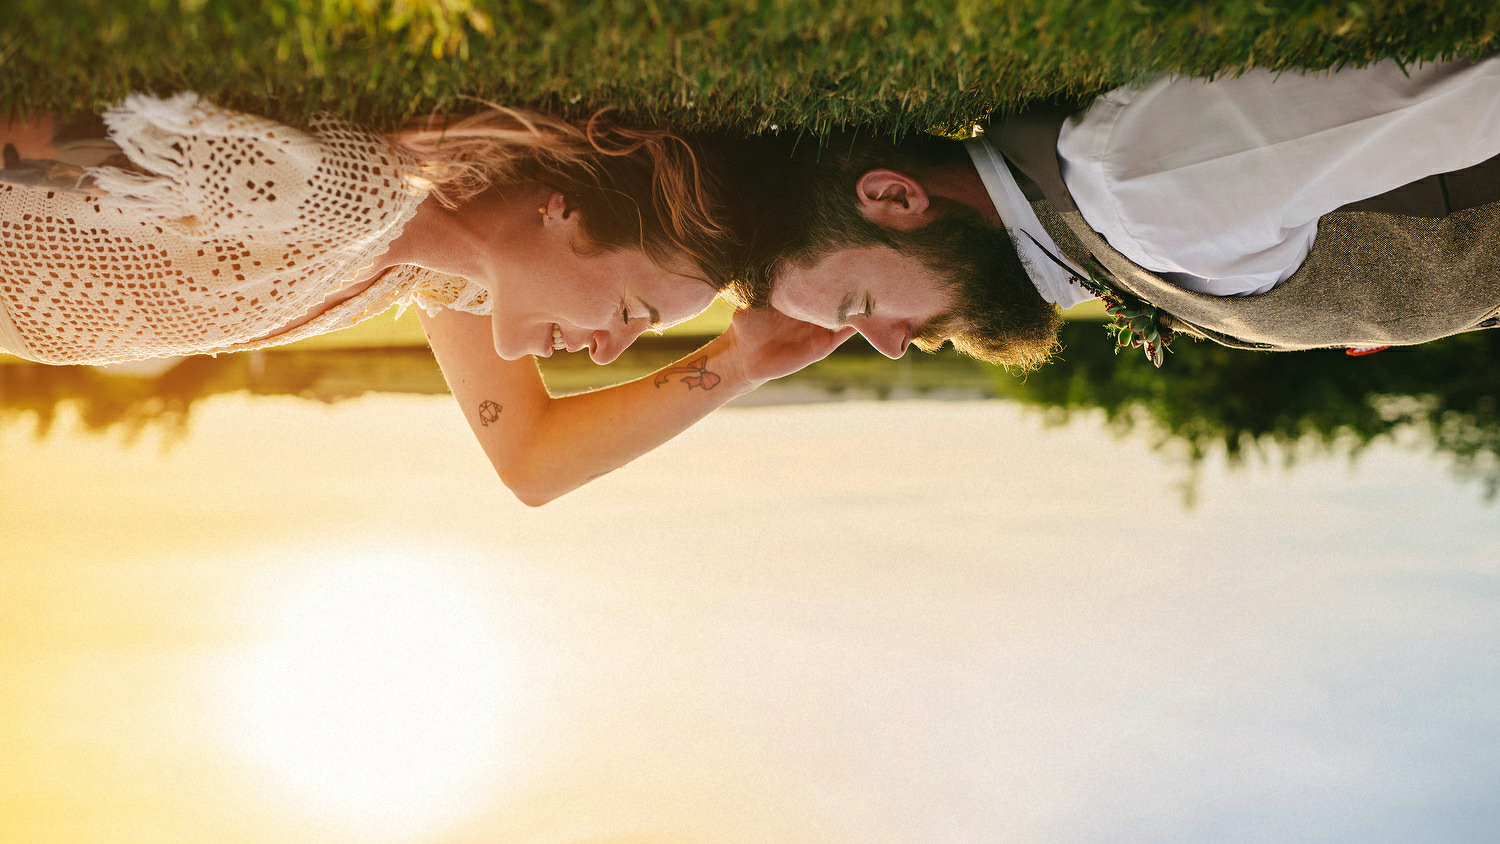 Switching from Nikon to Sony for Wedding Photography